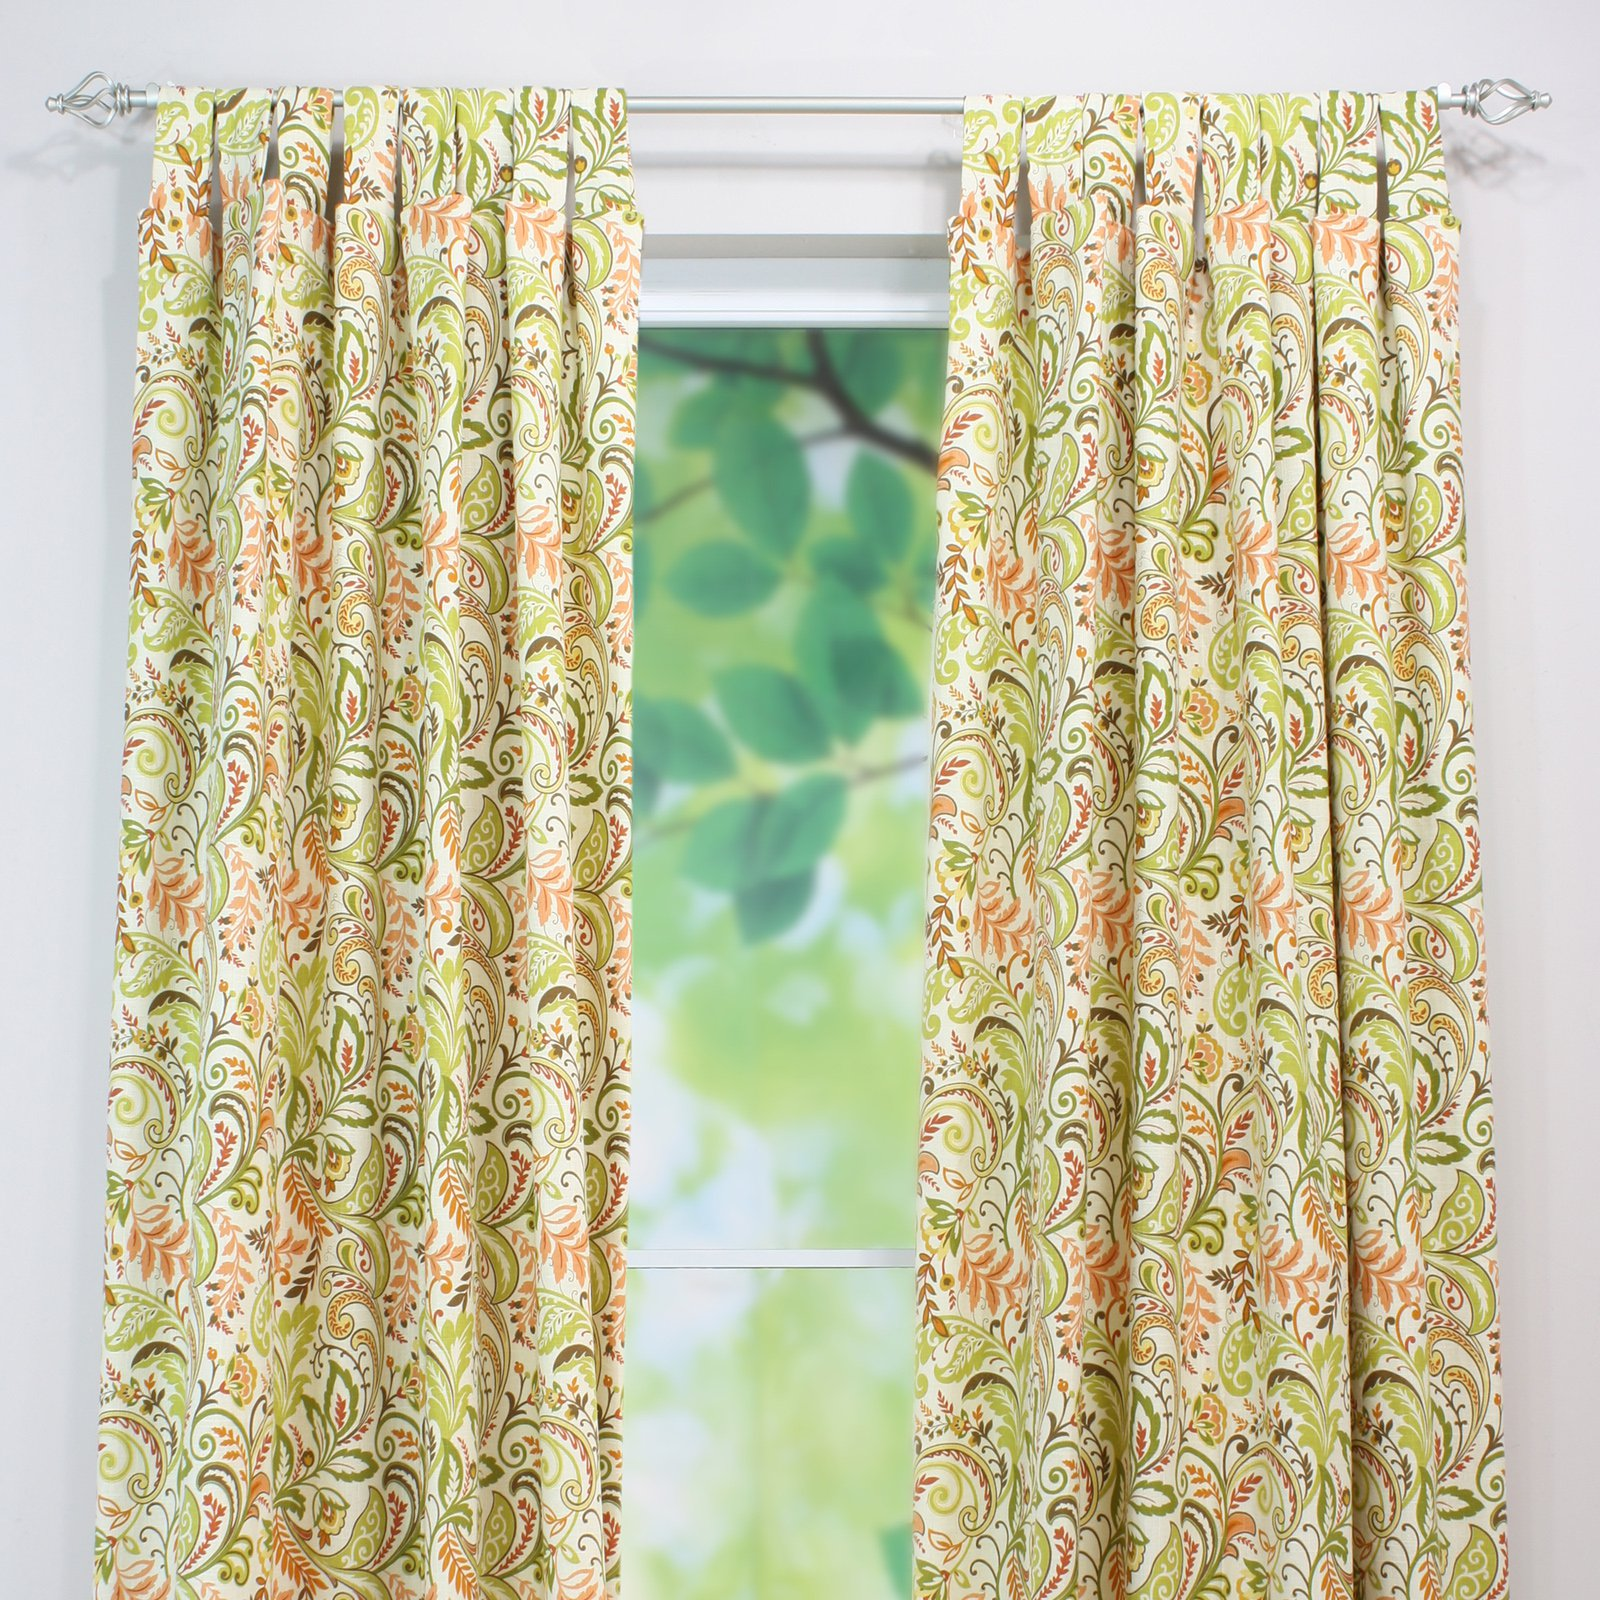 Brite Ideas Living Findlay Apricot Curtain Panel